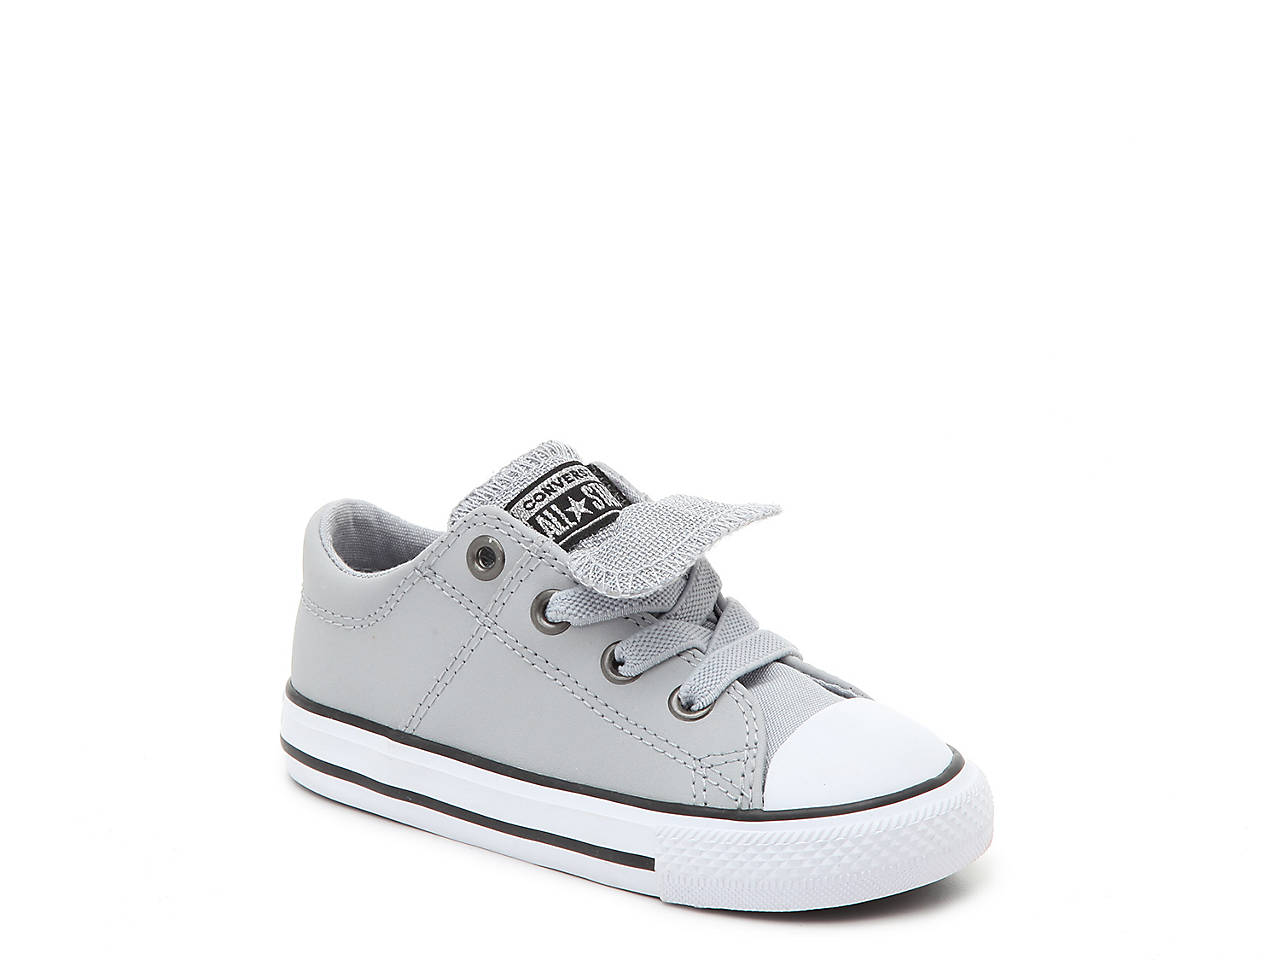 Converse Chuck Taylor All Star Maddie Infant & Toddler Slip